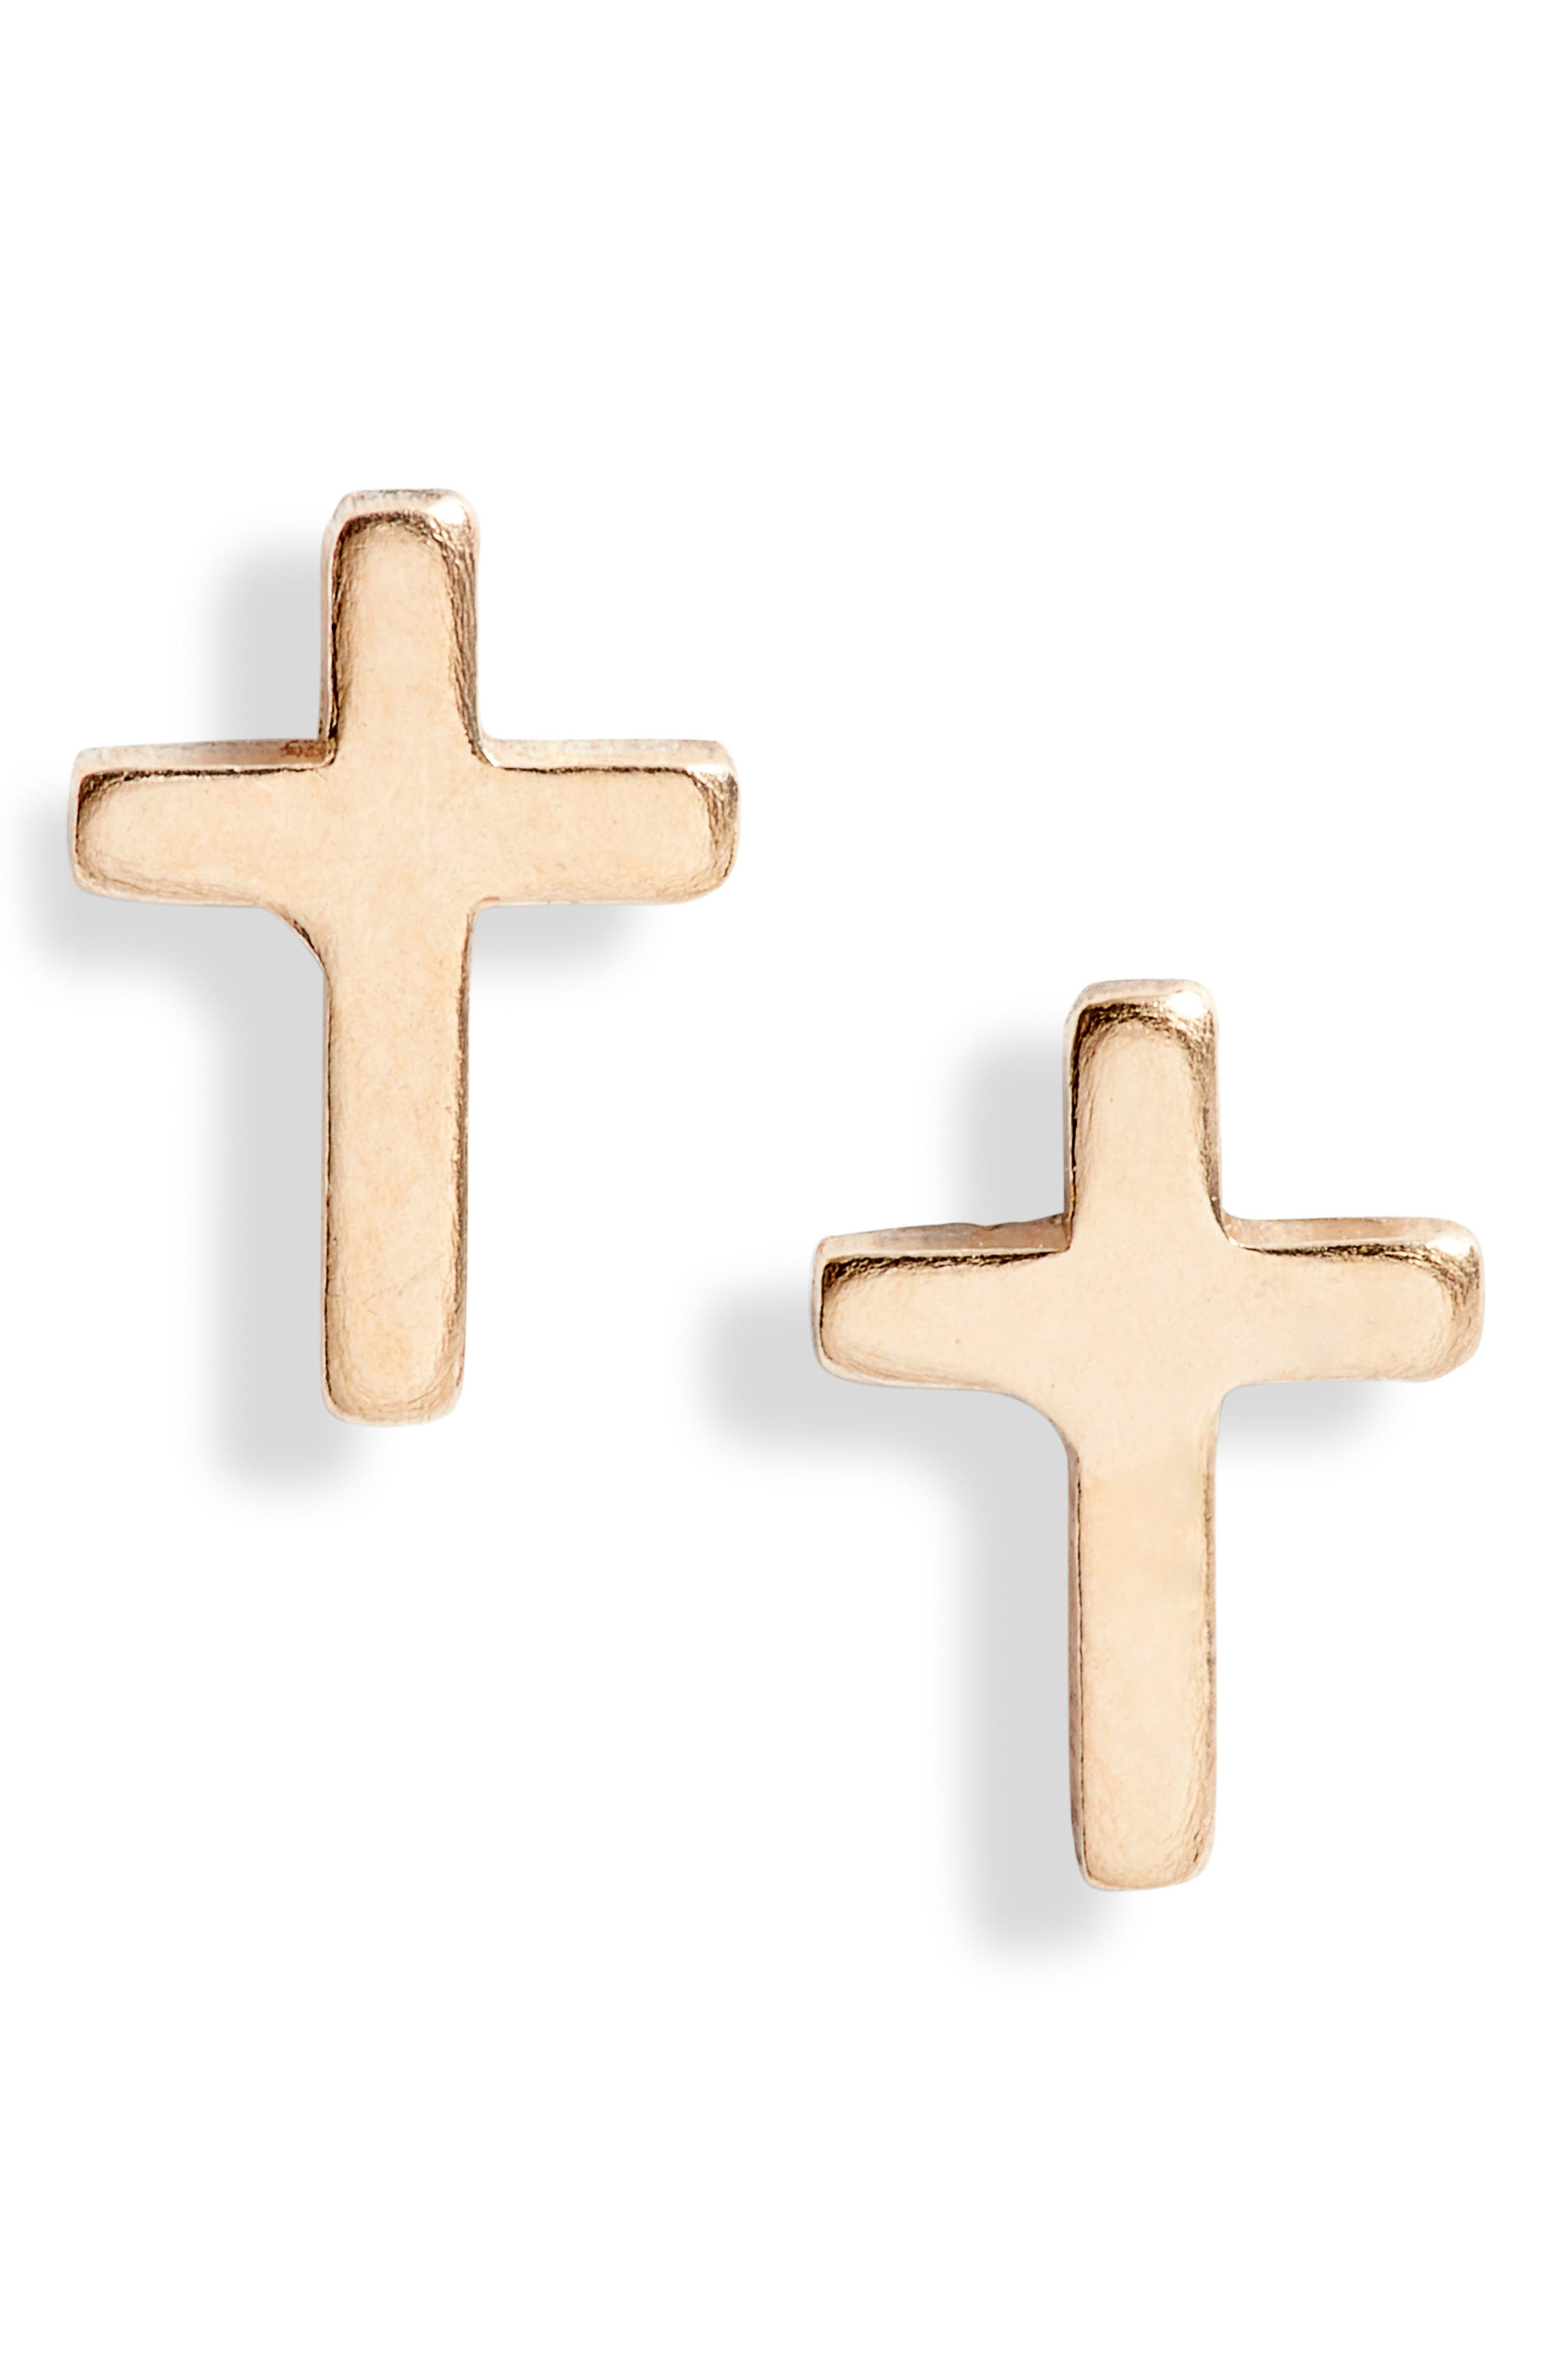 Made in San Diego, these shining cross studs are cast in a versatile size that can be worn either alone or as a second pair. Style Name: Set & Stones Ramona Cross Stud Earrings. Style Number: 6093907. Available in stores.